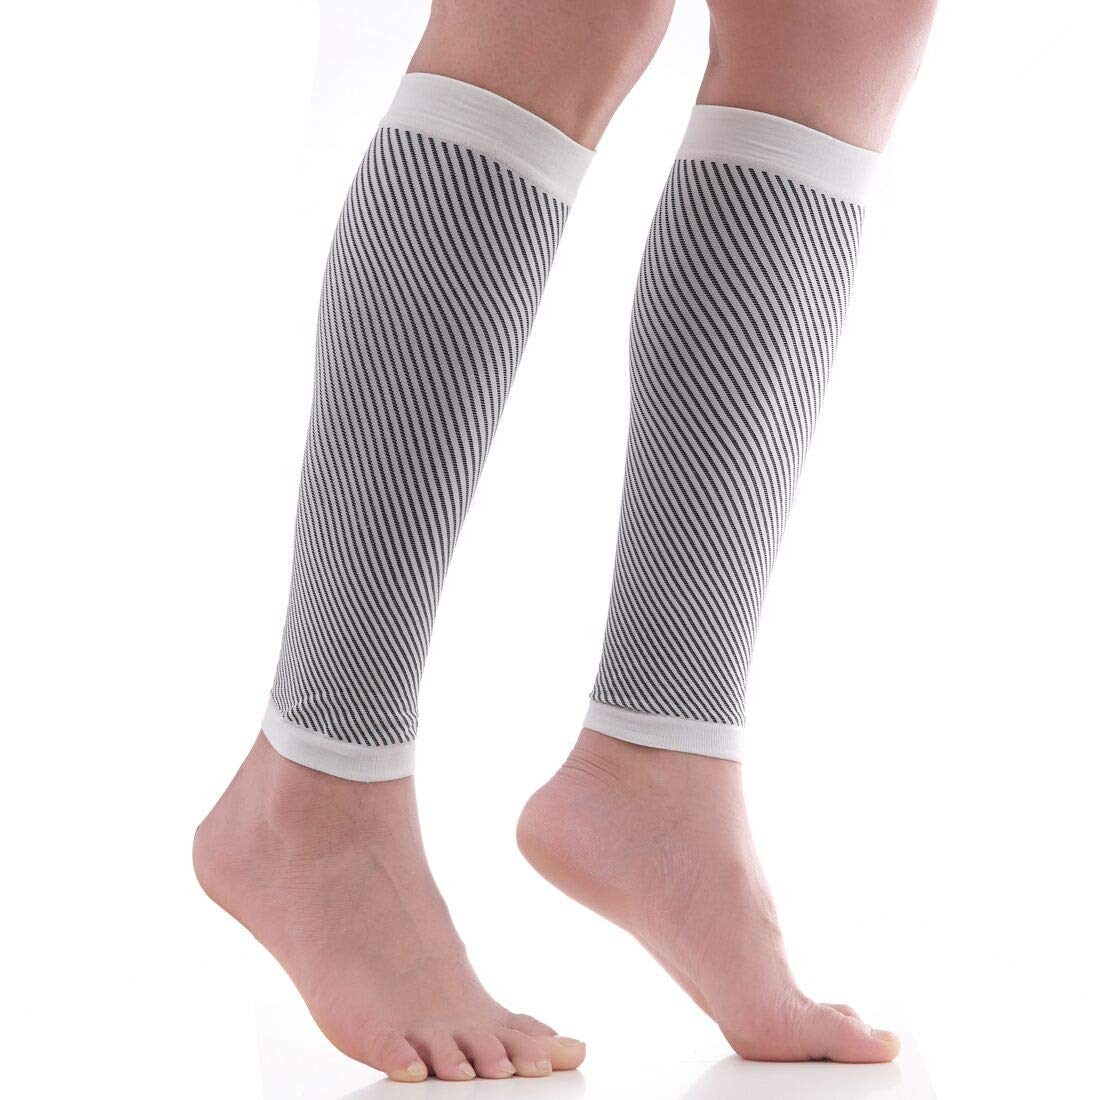 COALZS Calf Compression Sleeve Socks (20-30mmhg) Performance Support for Shin Splint, Running, Calf Pain Relief, Leg Support for Men Women Improves Circulation and Recovery